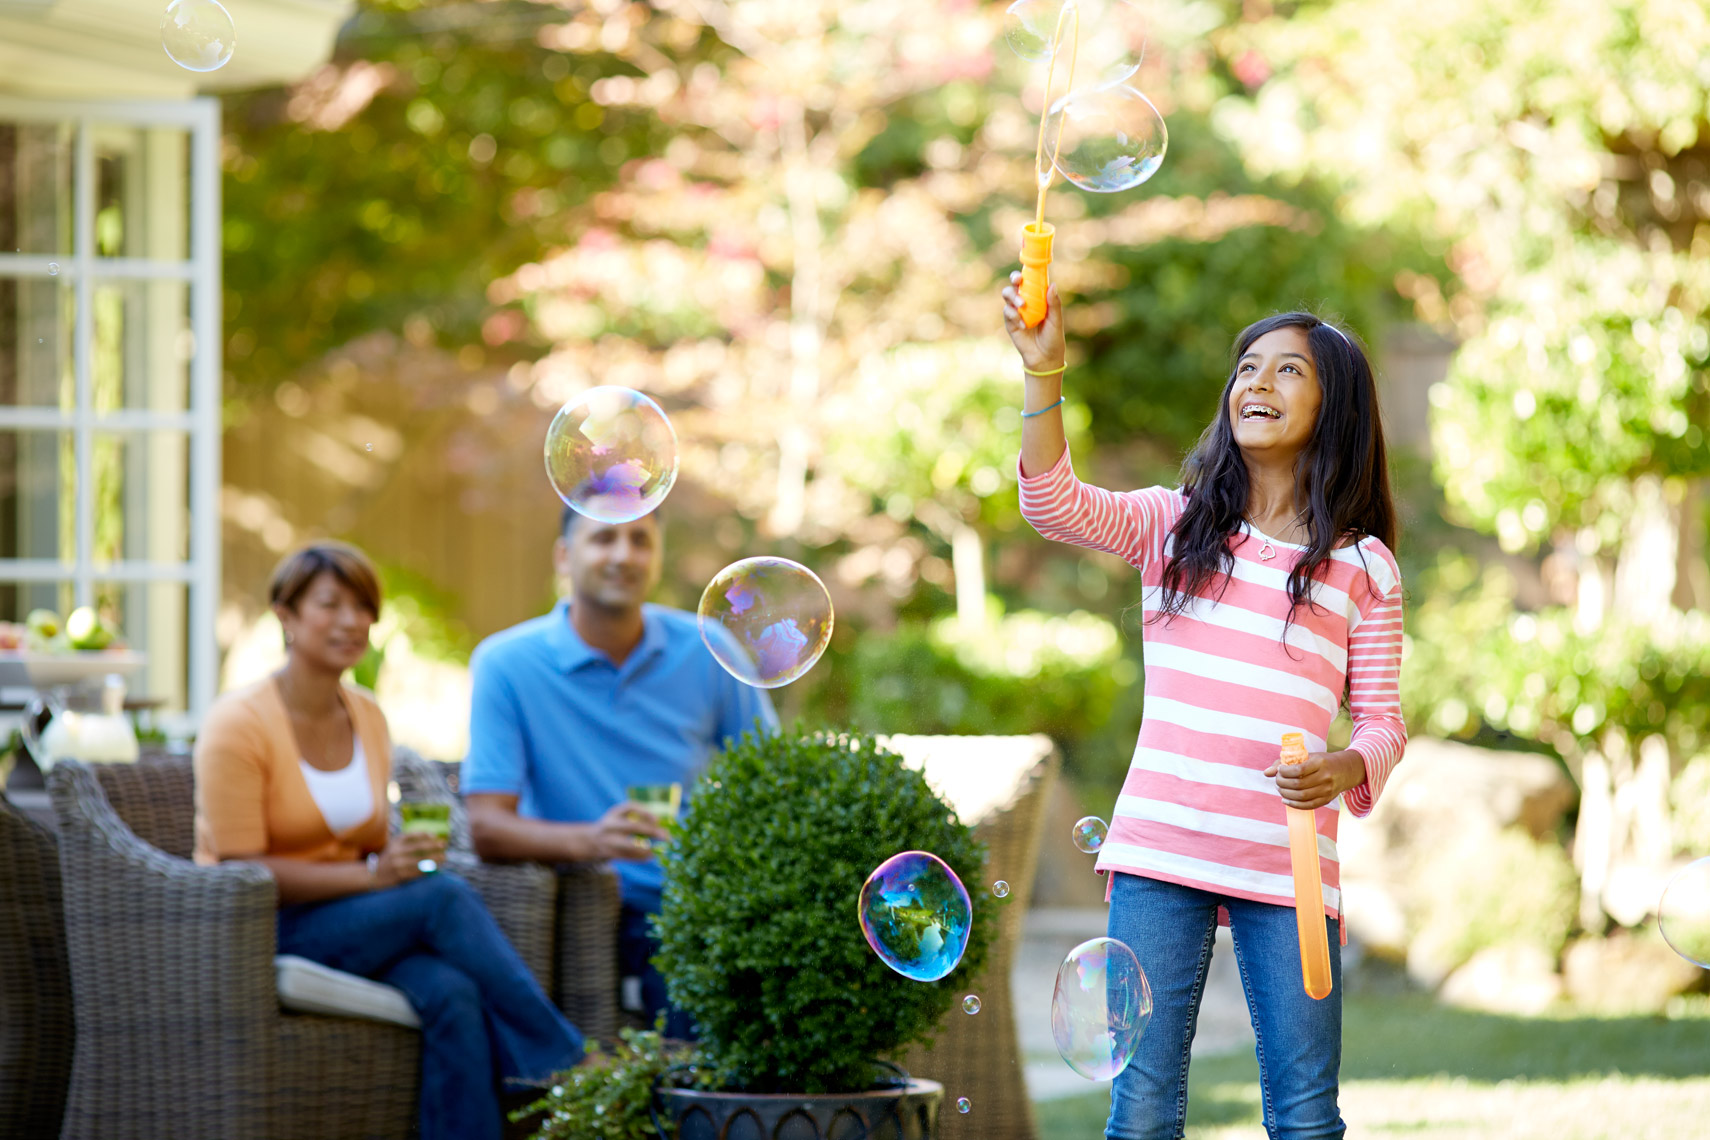 lifestyle photographer, advertising photographer, girl blowing bubbles, garden, yard, parents and kids, lawn, garden, green space, backyard, san francisco